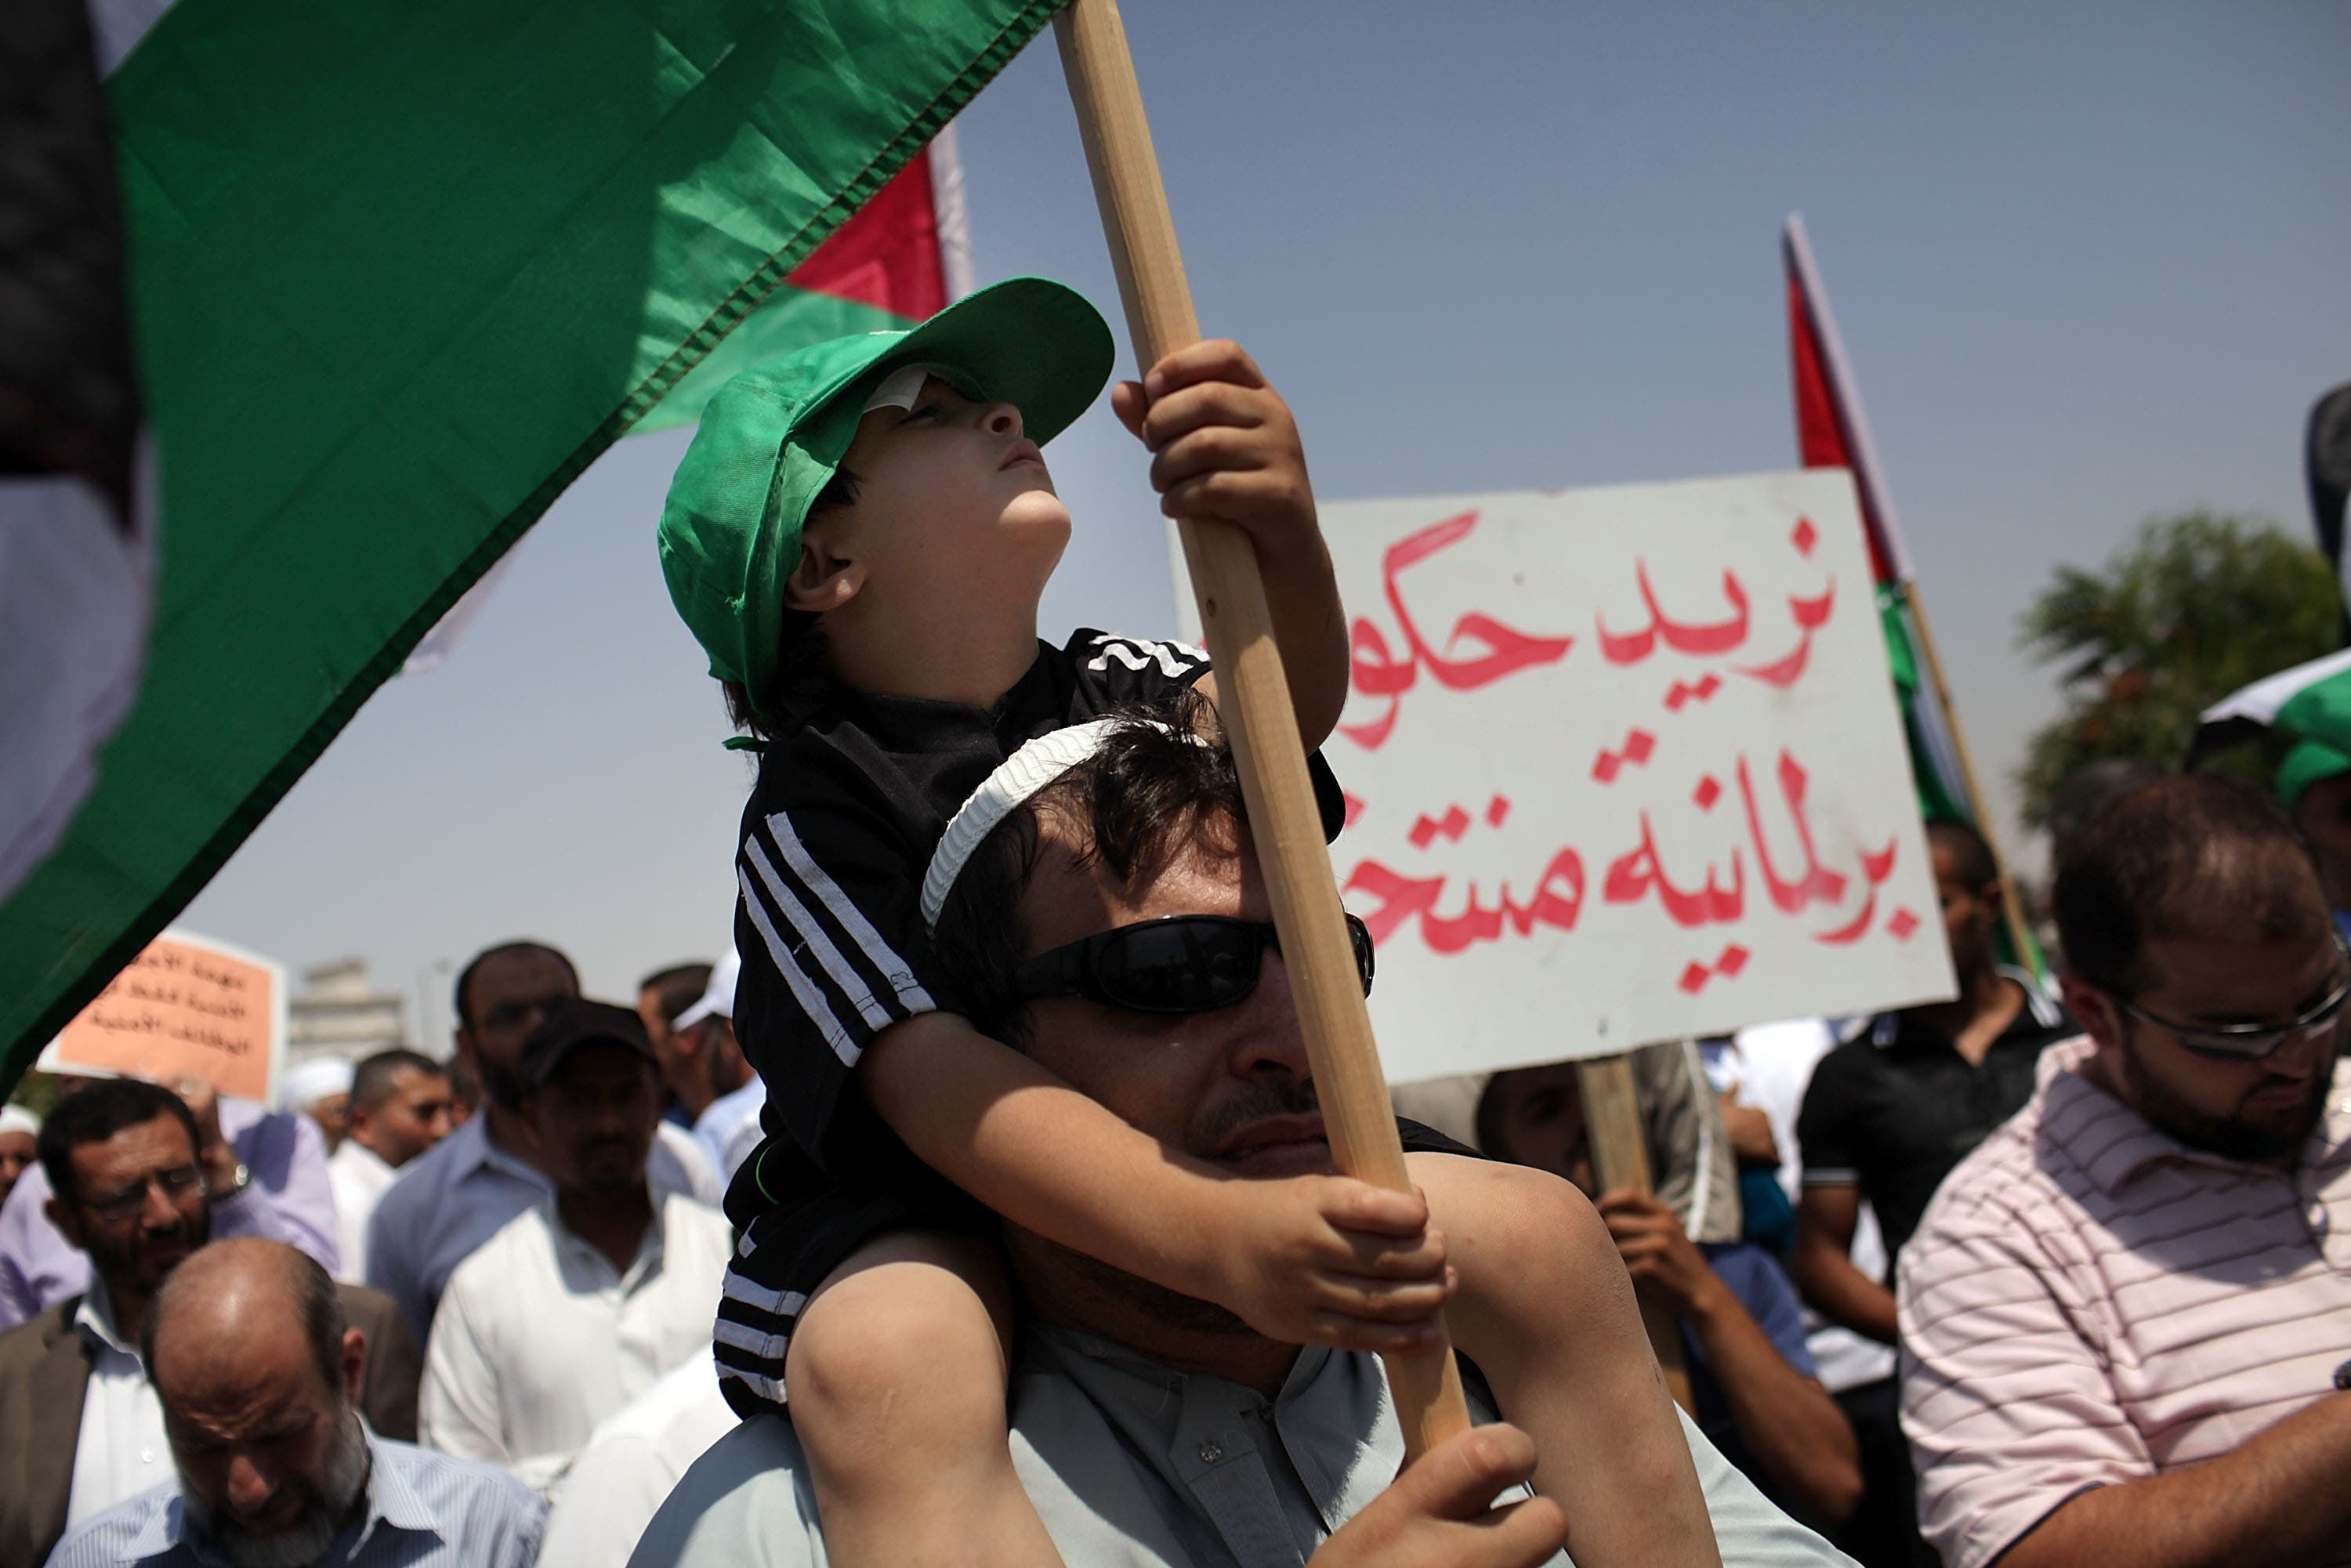 Jordan demands reforms and things get ugly again in July after a relatively quiet, protest-free period since March.